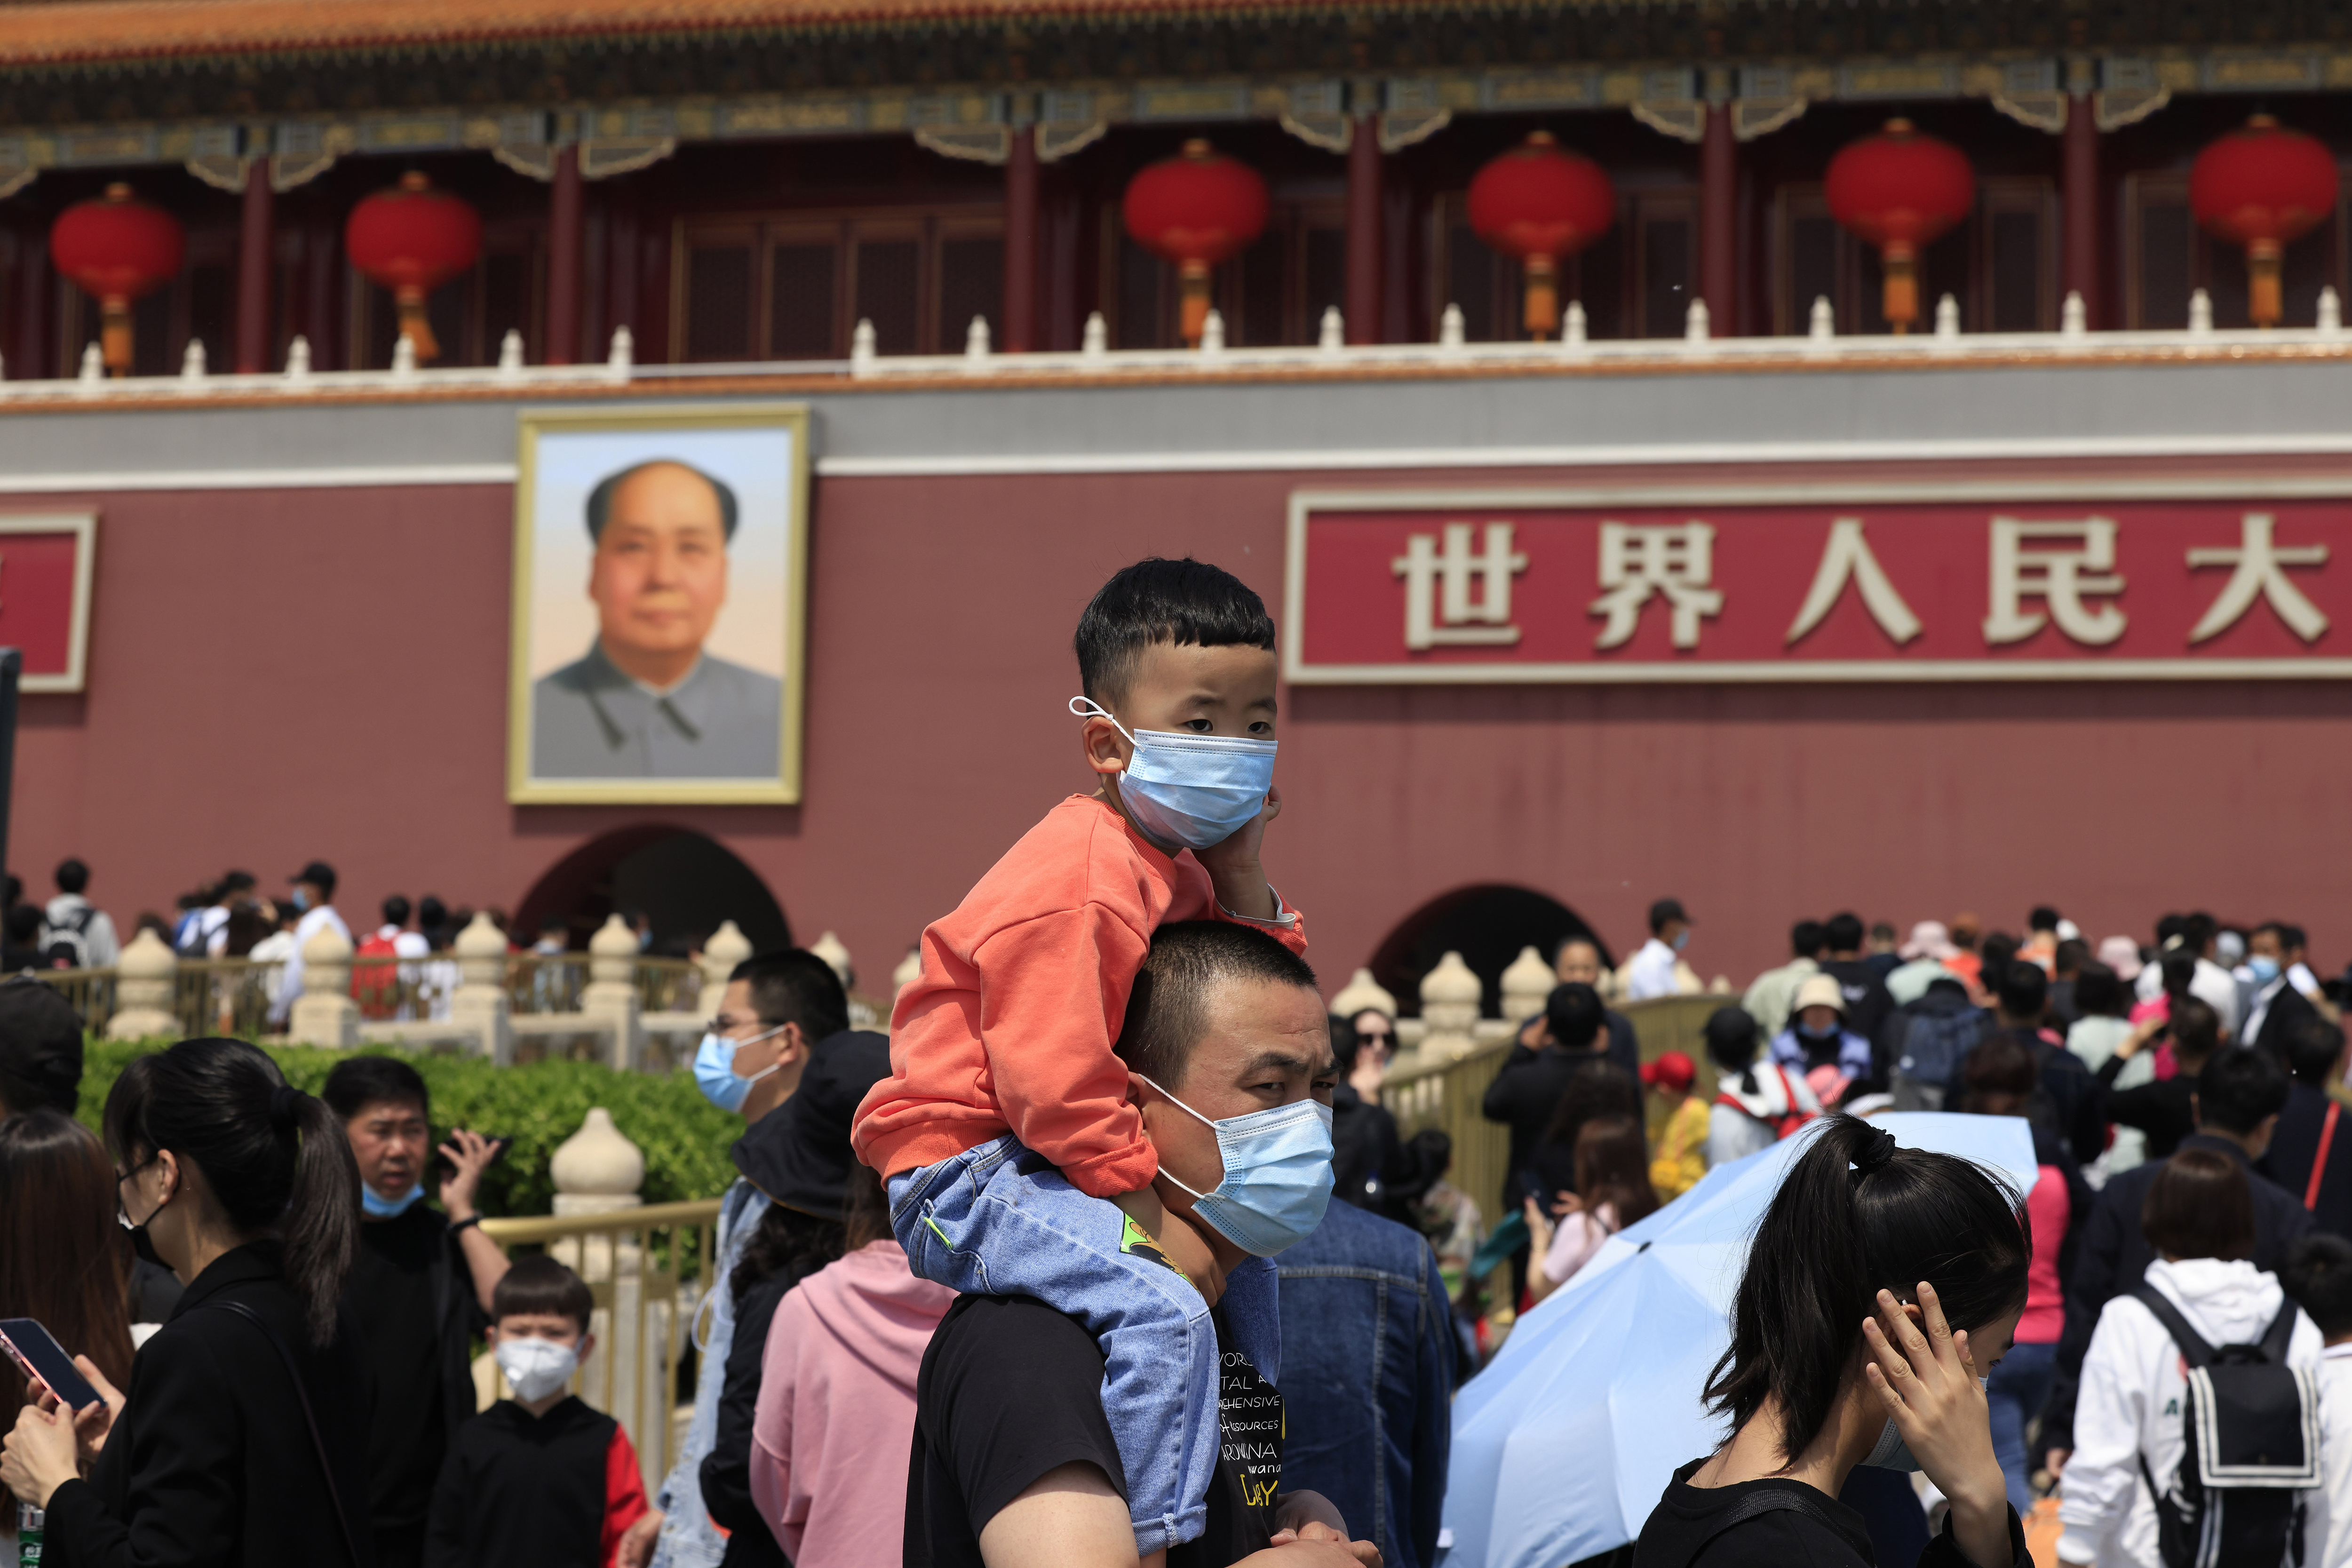 In this May 3 2021 photo, a man and child visit Tiananmen Gate near the portrait of Mao Zedong in Beijing.